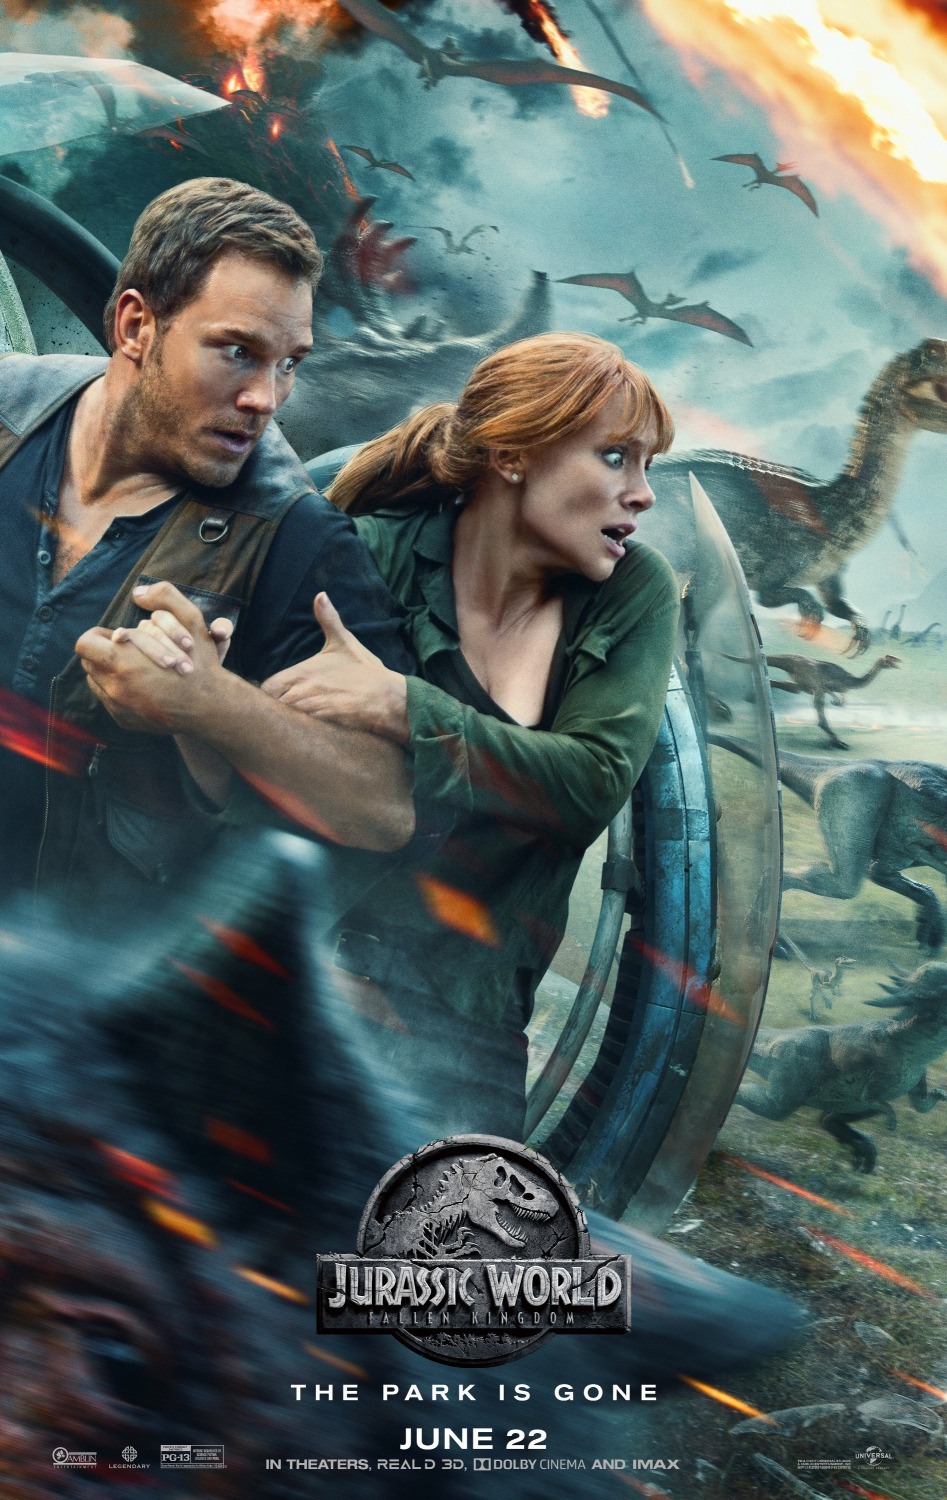 Jurassic World Fallen Kingdom movie poster